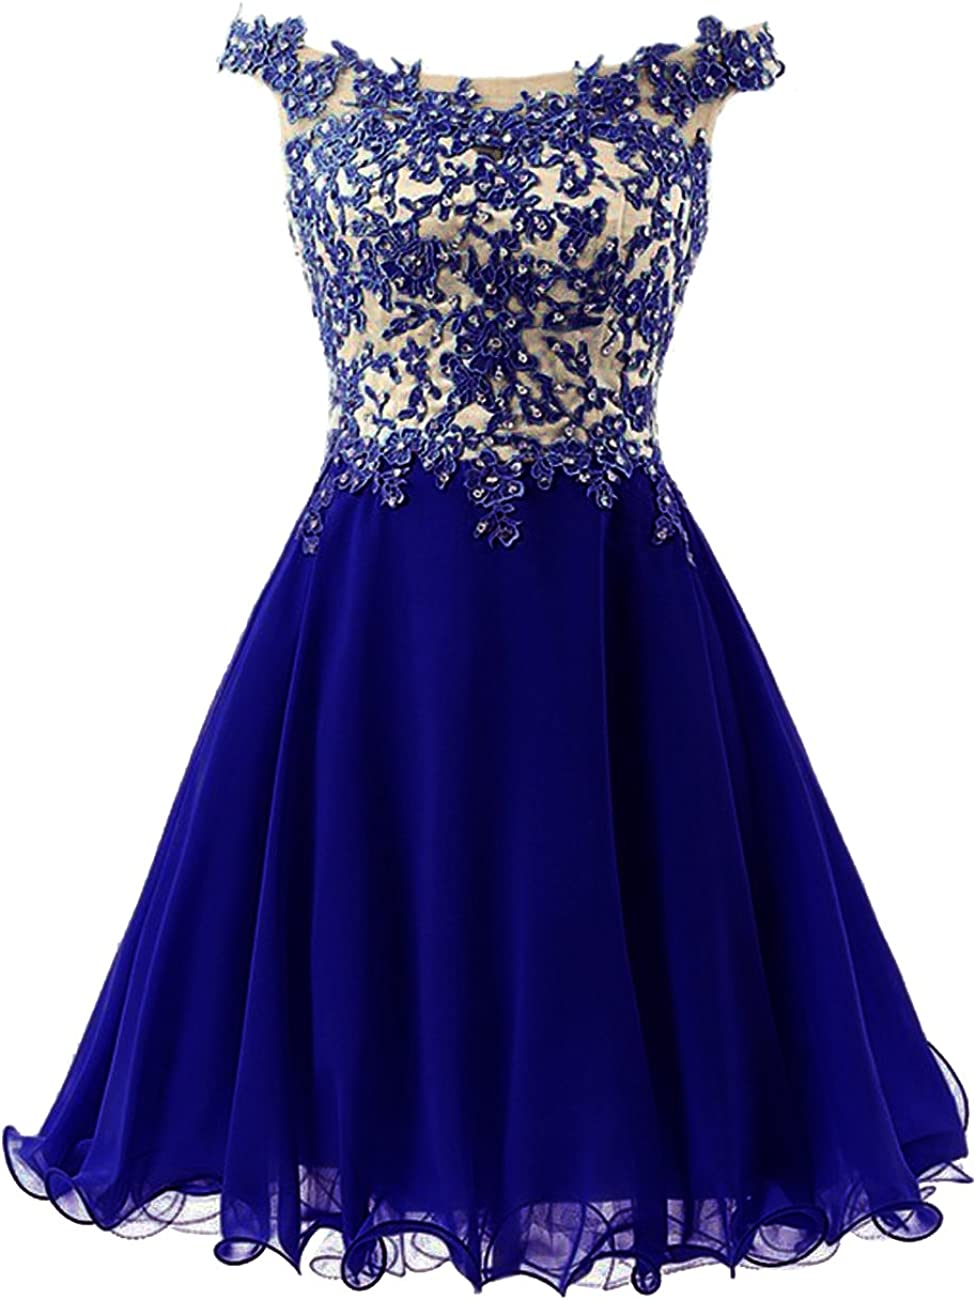 JAEDEN Lace Short Homecoming Dress Chiffon See Through Back Cocktail Party Dress Appliques Mini Prom Gown